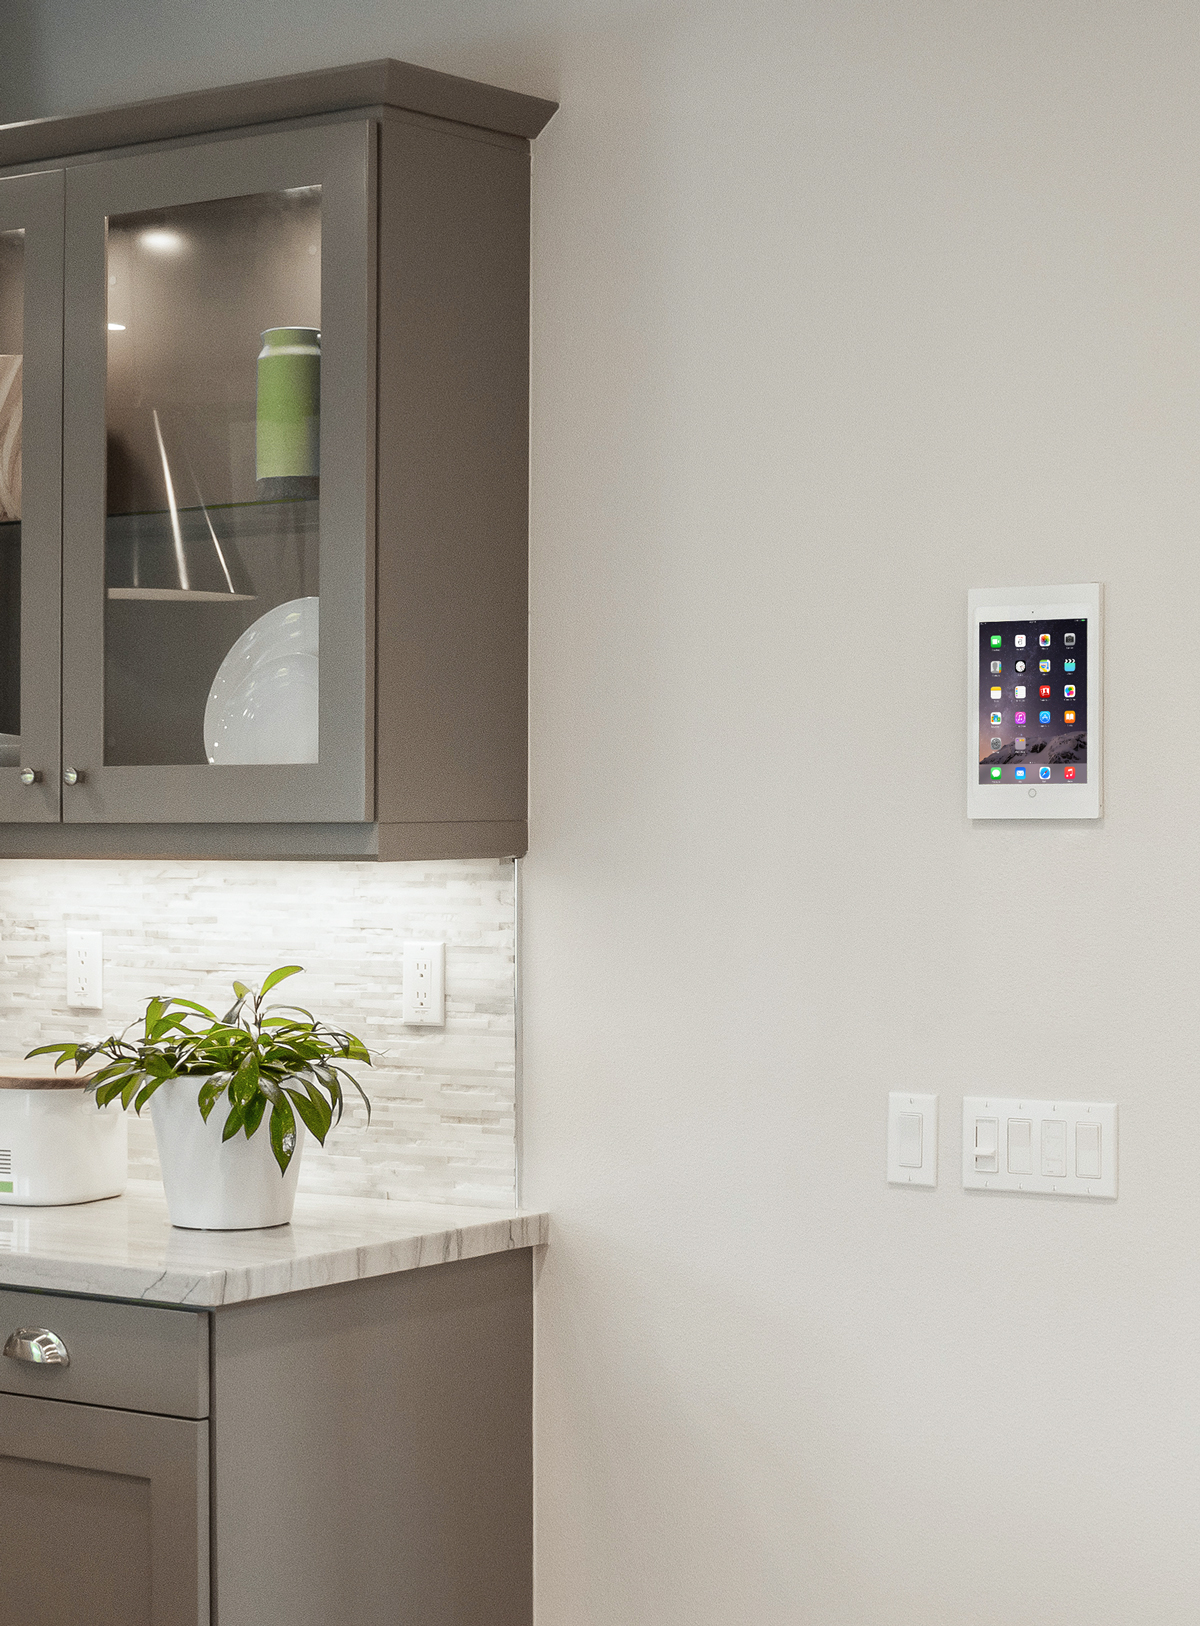 Surface Mount, the best iPad wall mount by IPORT installed in a home near the kitchen.